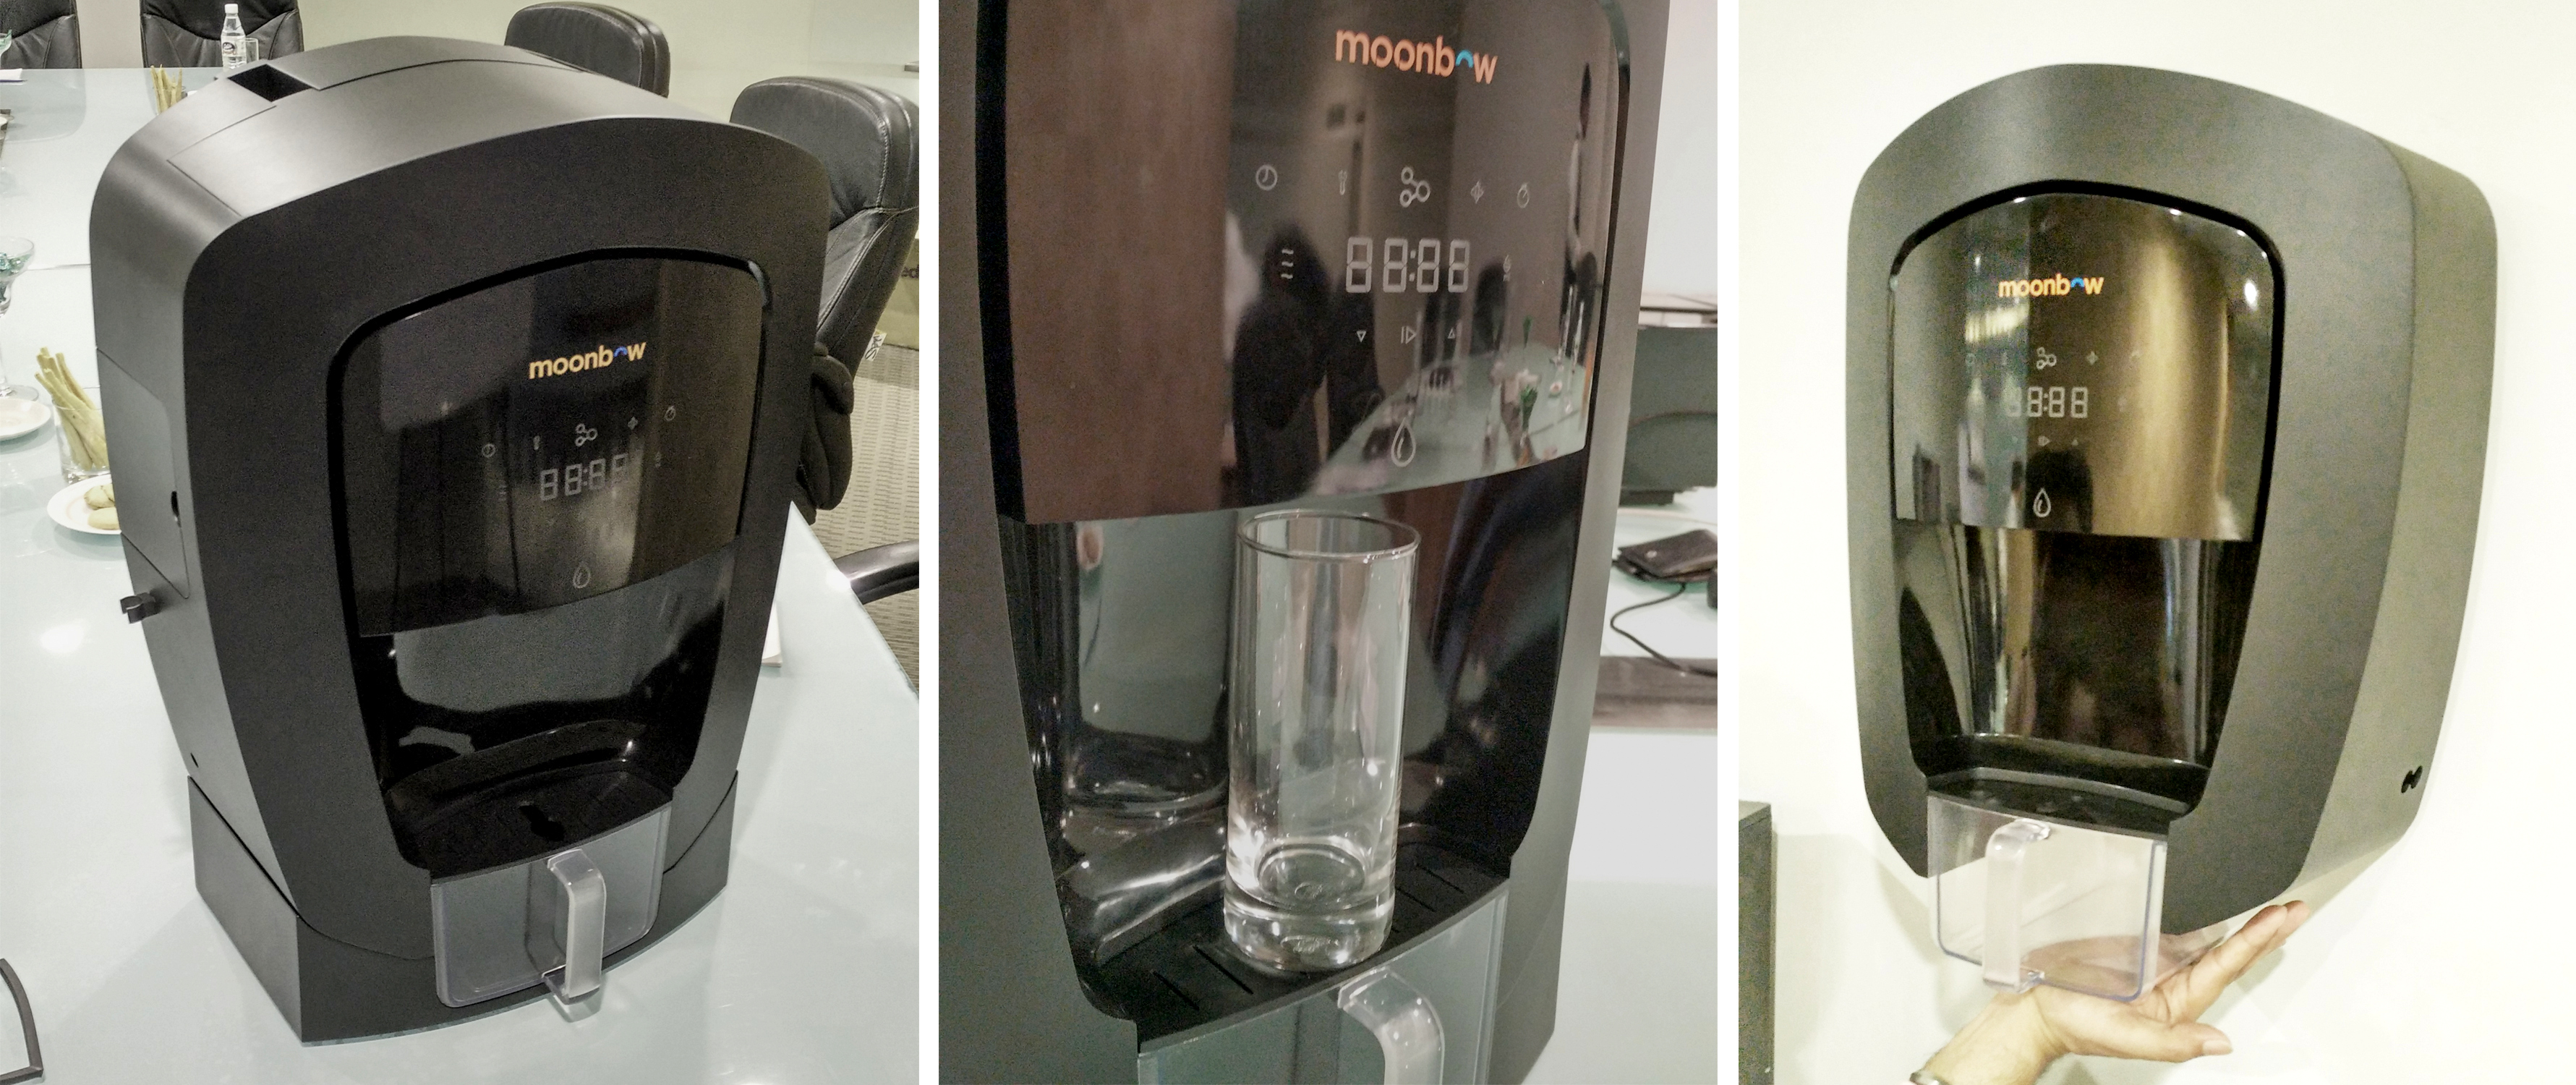 moonbow water purifier final product